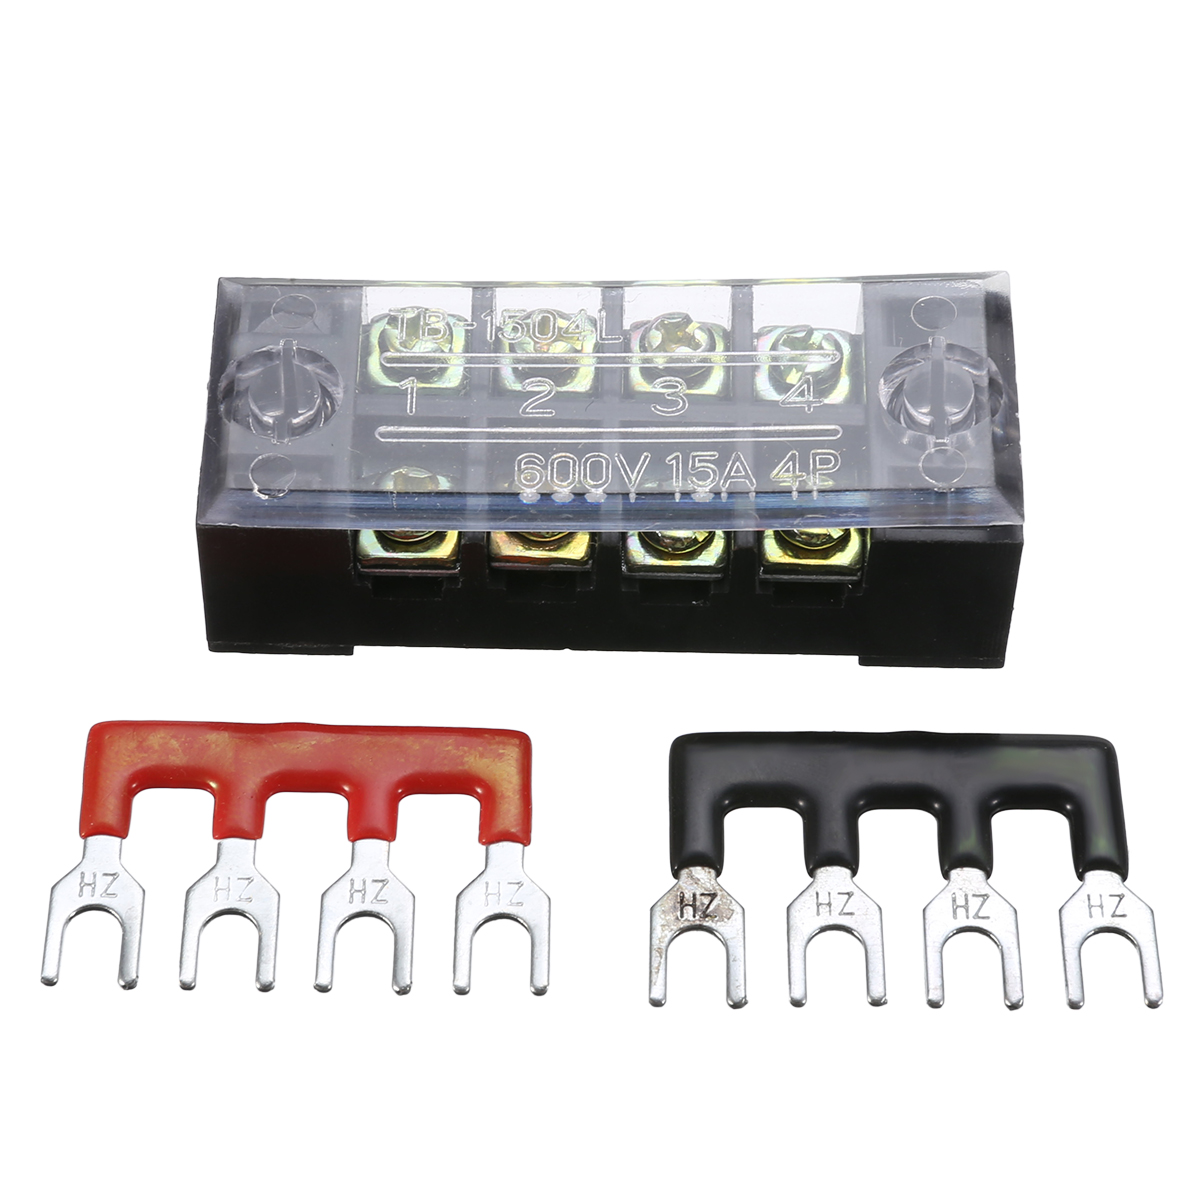 1pc 600V 15A 4P Power Distribution block Double Row Wire Barrier Terminal Block With 2 Connector Strips for Electronic Connector image